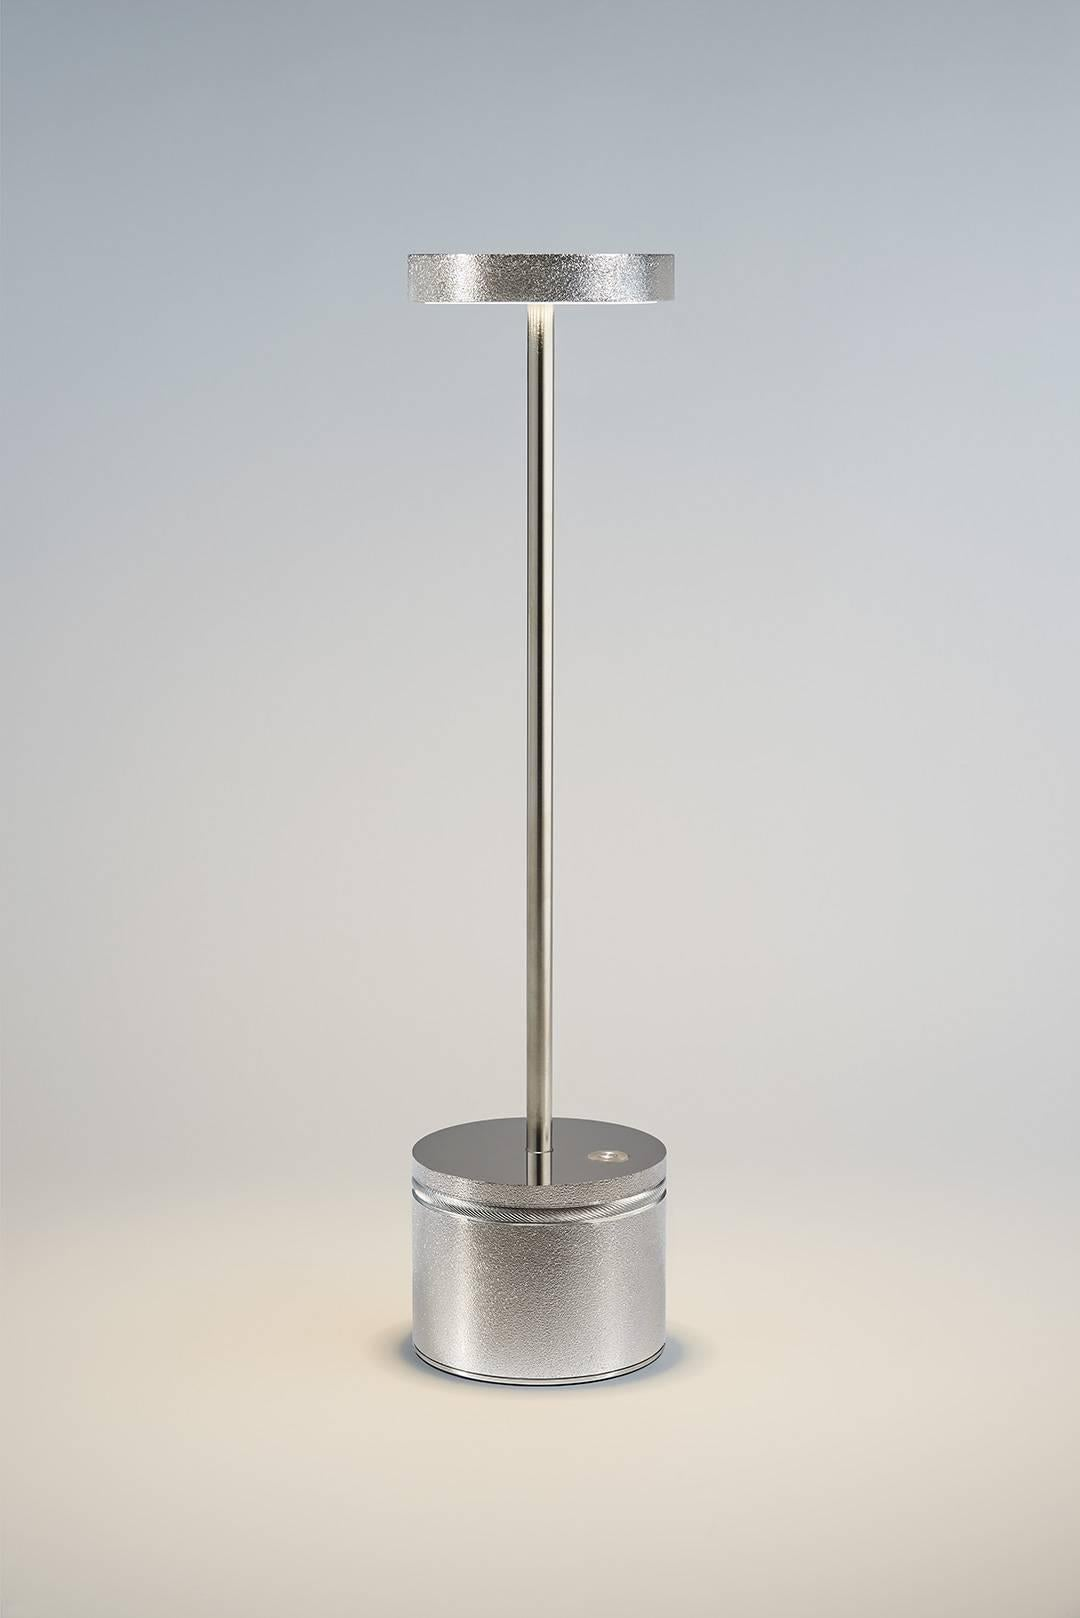 Luxciolle Wireless Table Lamp Design By Hervé Isle De Beauchaine Made By  Charles Paris Made Of